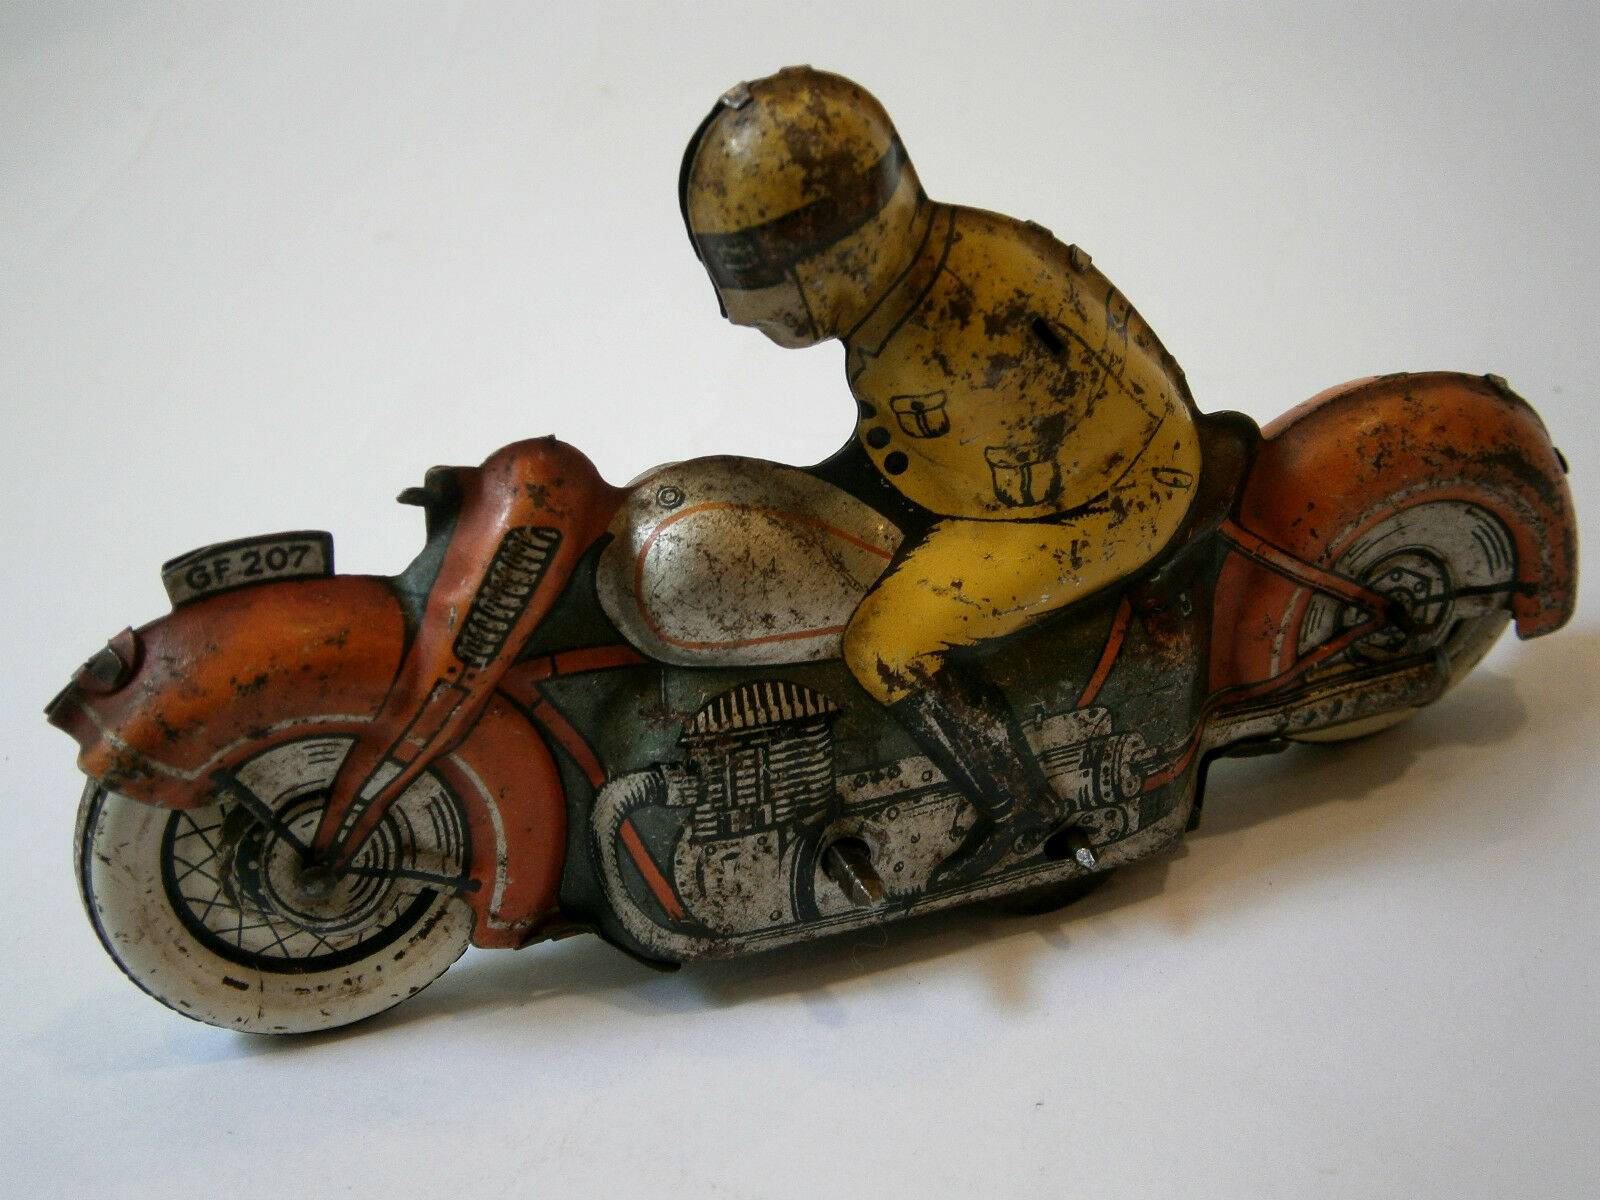 ANTIQUE RARE OLD GERMAN GF 207 FRICTION 525-16 TOY TIN MOTOR MOTORCYCLE 1930's